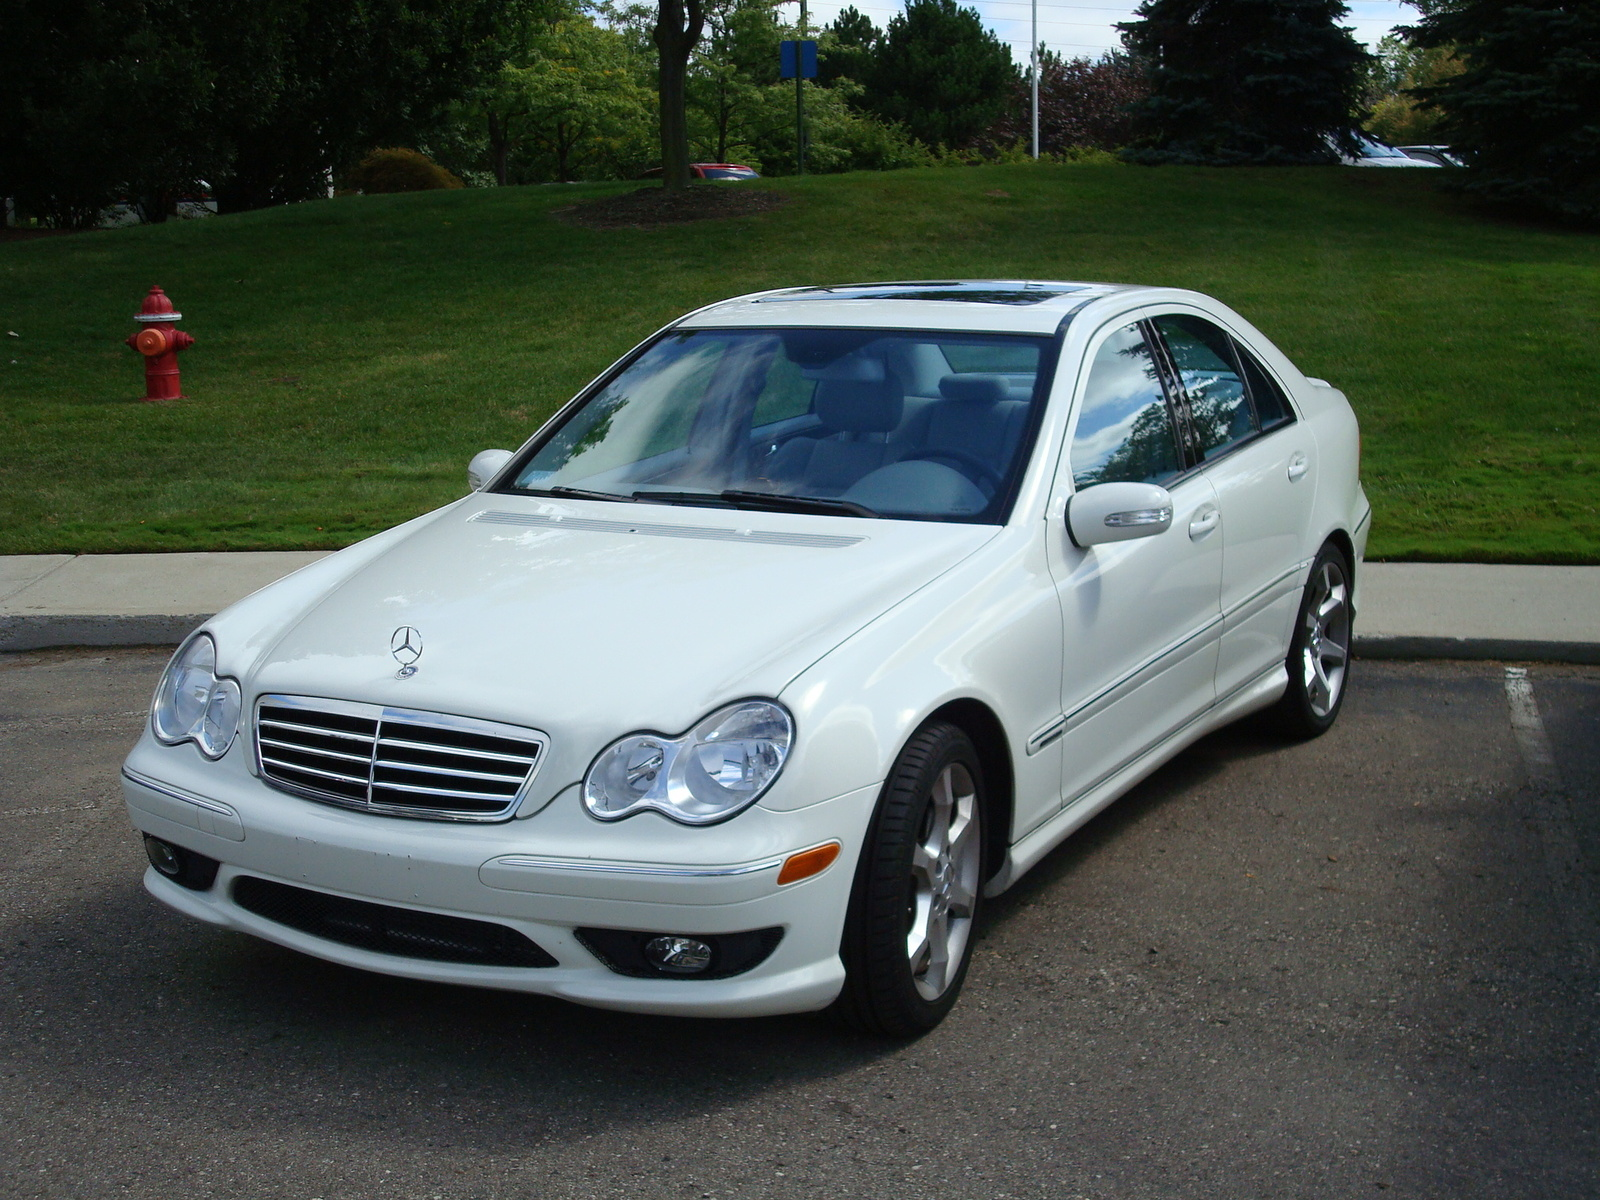 2007 mercedes benz c class pictures cargurus for Mercedes benz 2007 c230